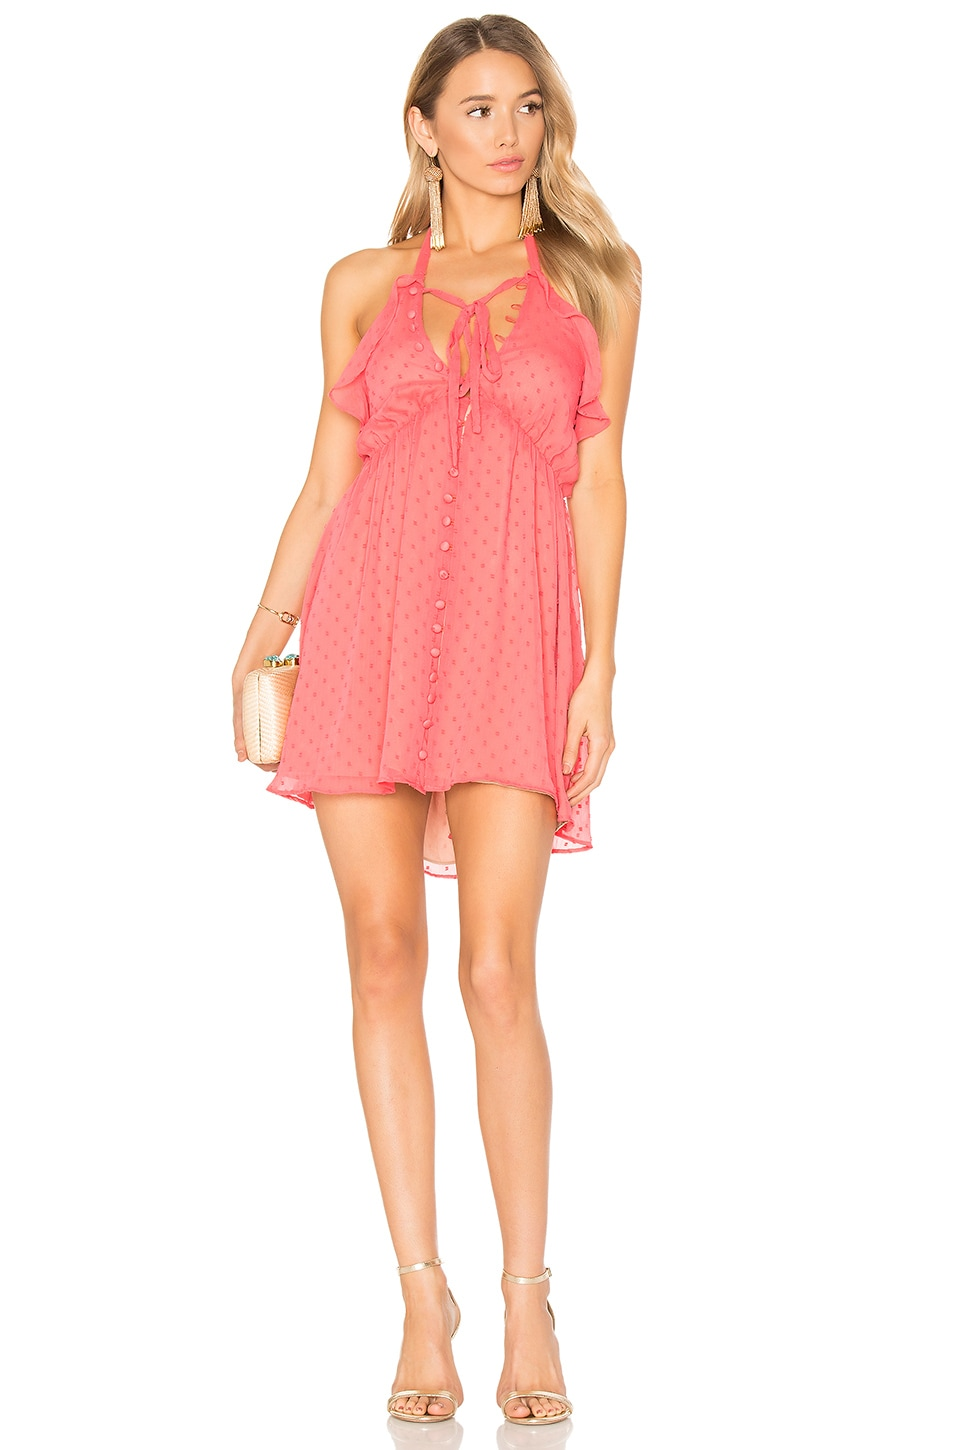 Tarta Tank Dress by For Love & Lemons